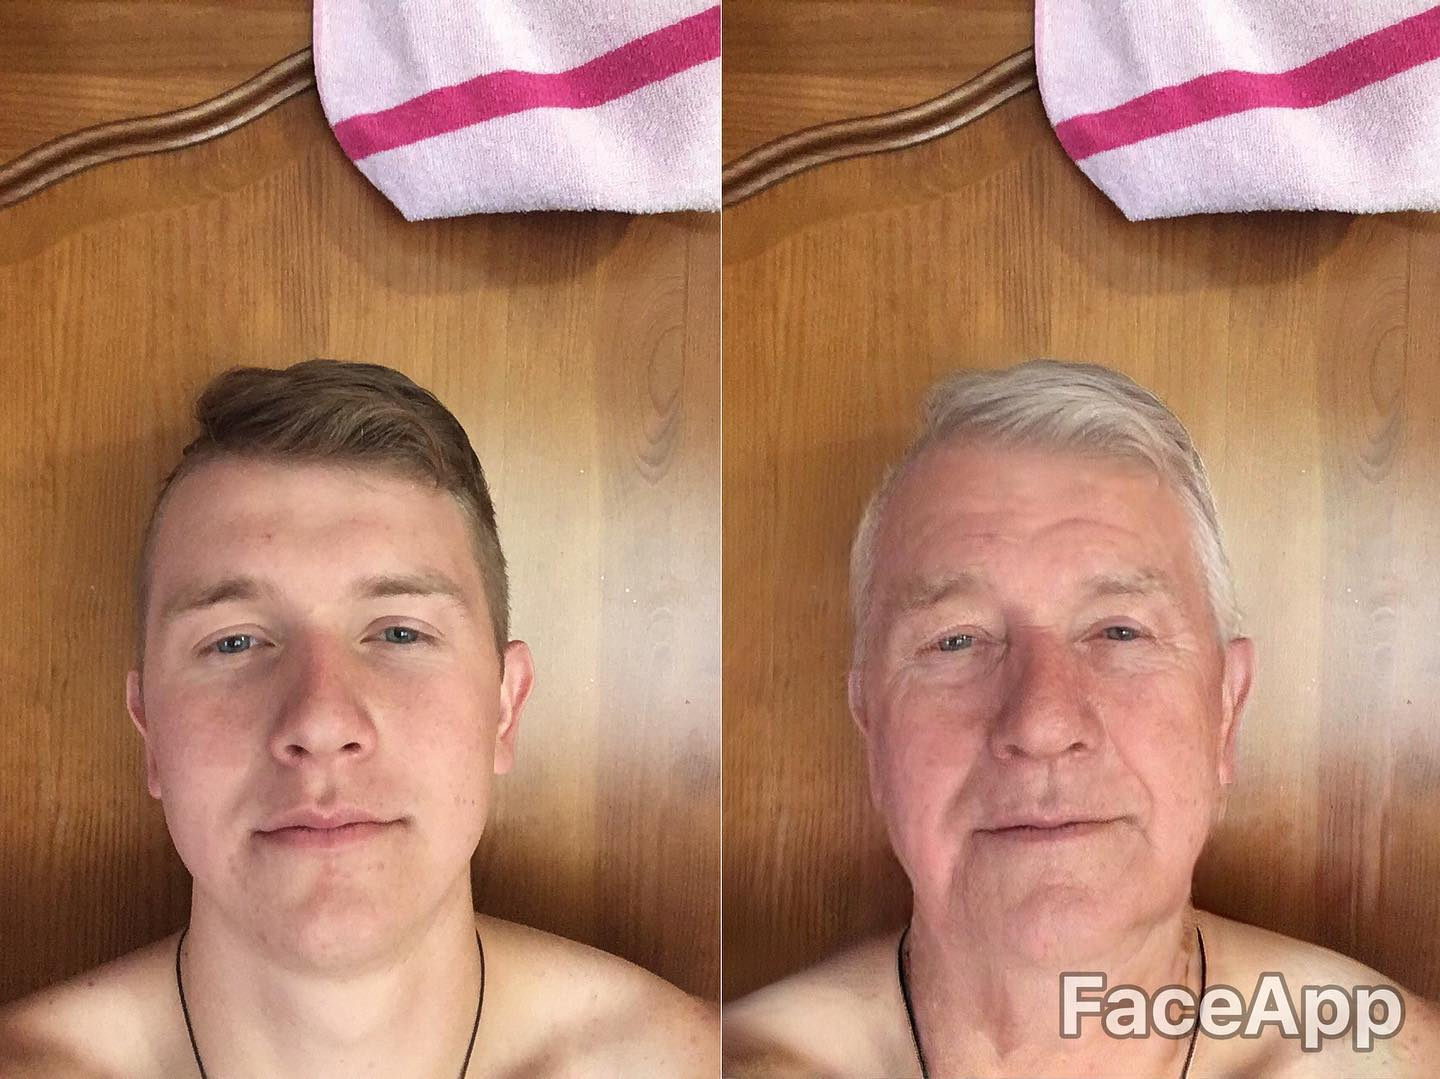 Age-Altering App Called FaceApp Receives Rights To Your Photos Forever